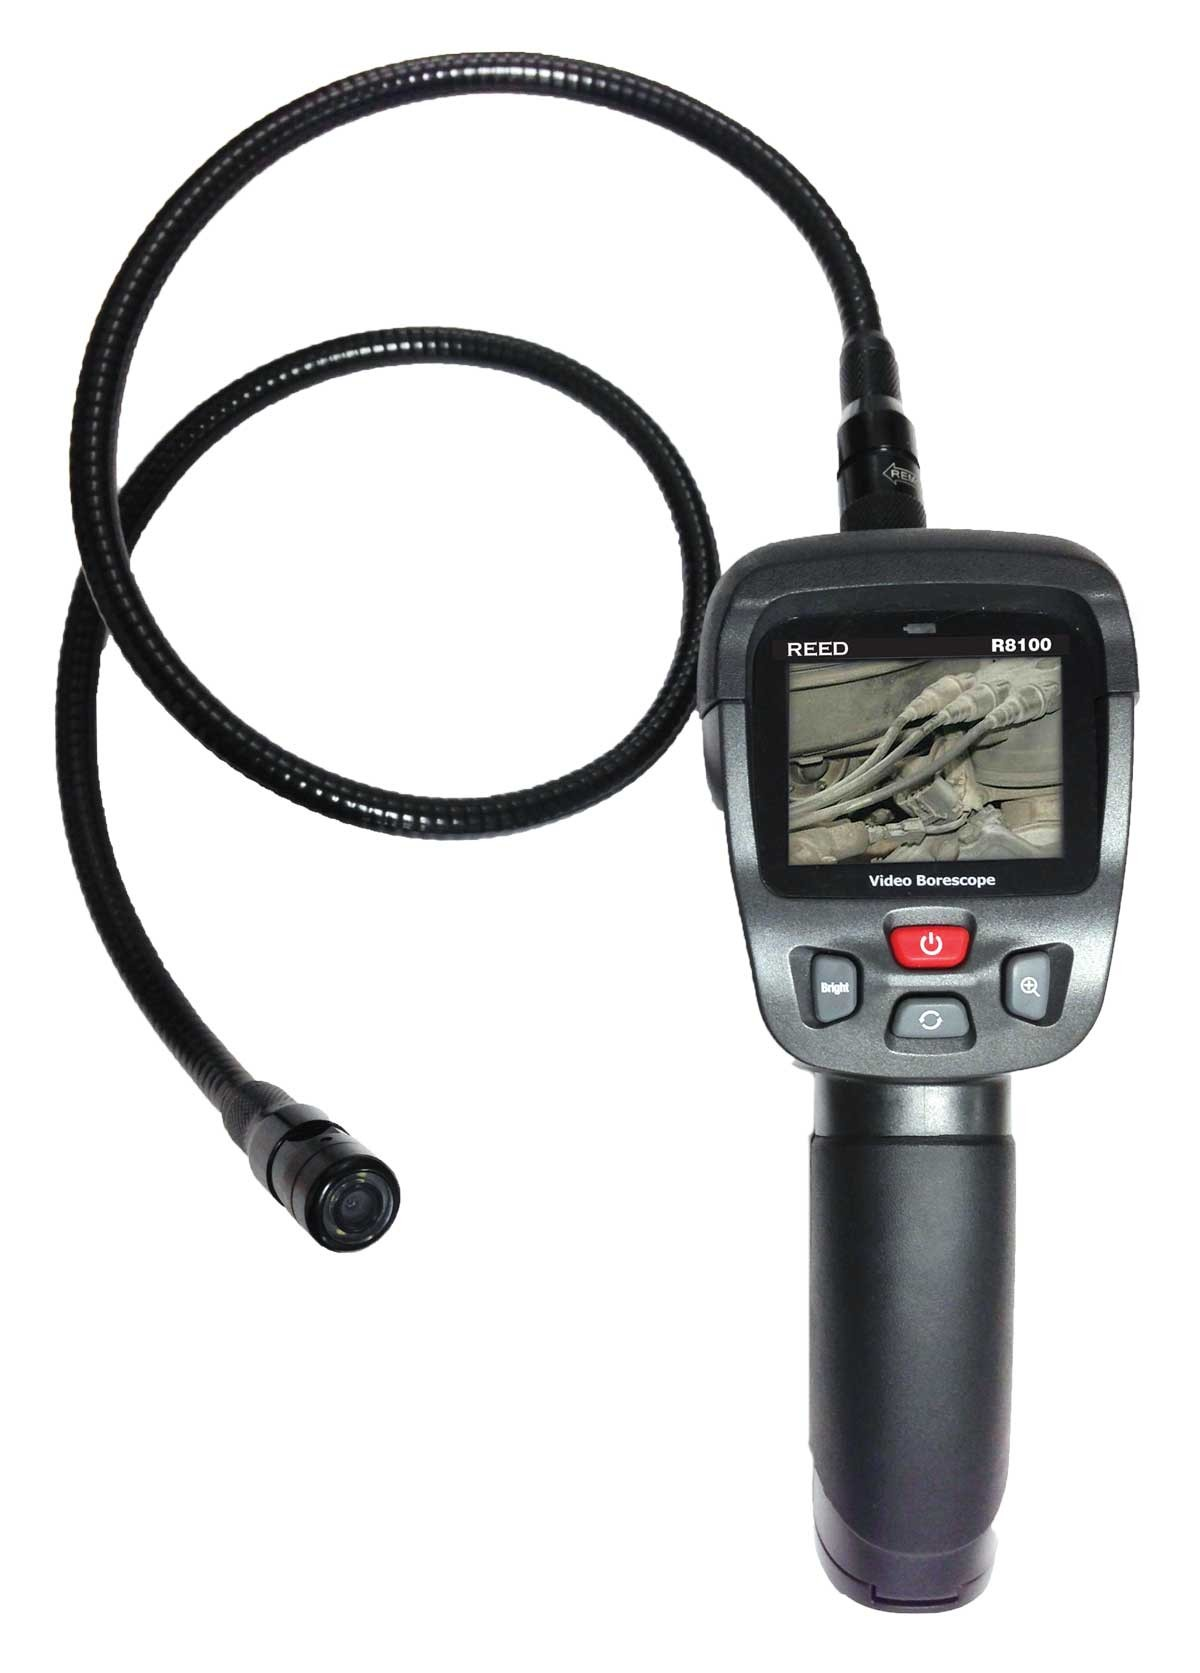 REED R8100 Video Borescope Inspection Camera-REED R8100 2